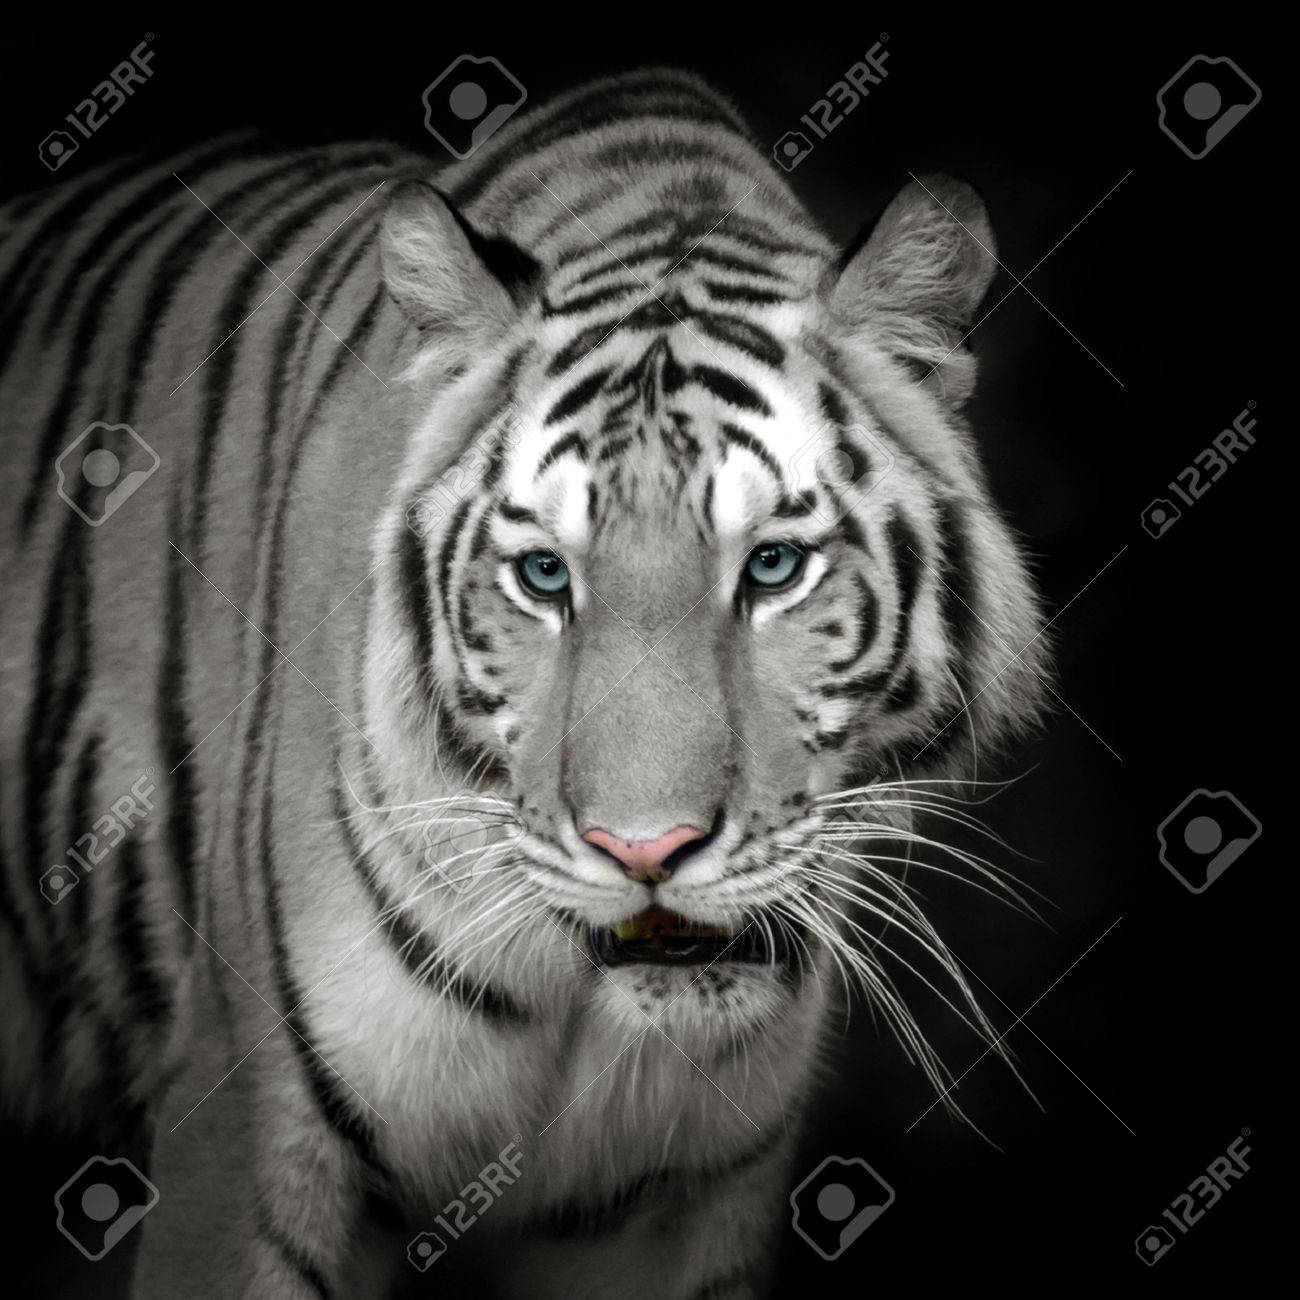 white tiger roaring stock photo, picture and royalty free image